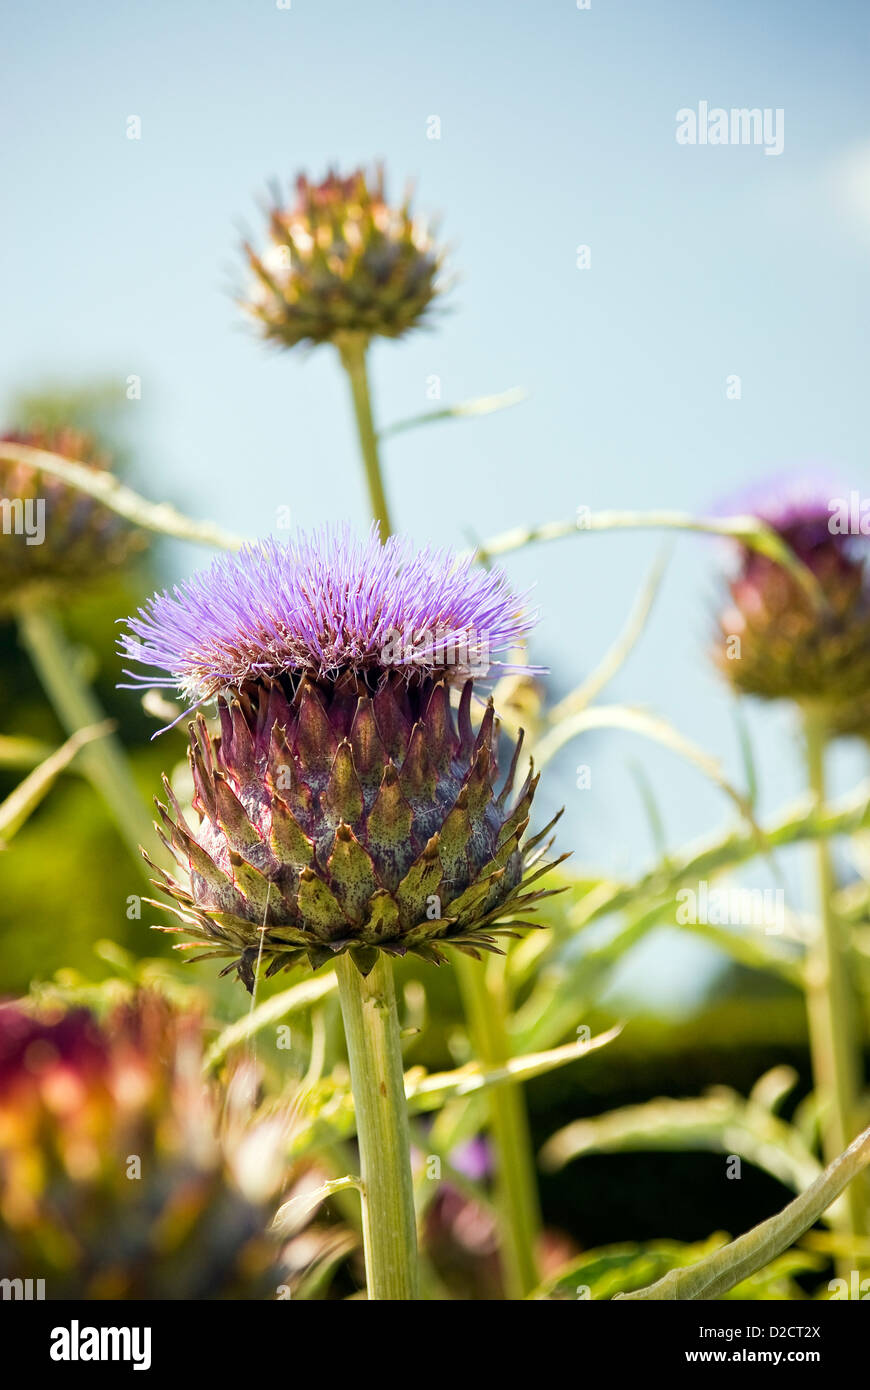 Thistles growing at West Dean Gardens, Chichester, West Sussex, UK - Stock Image